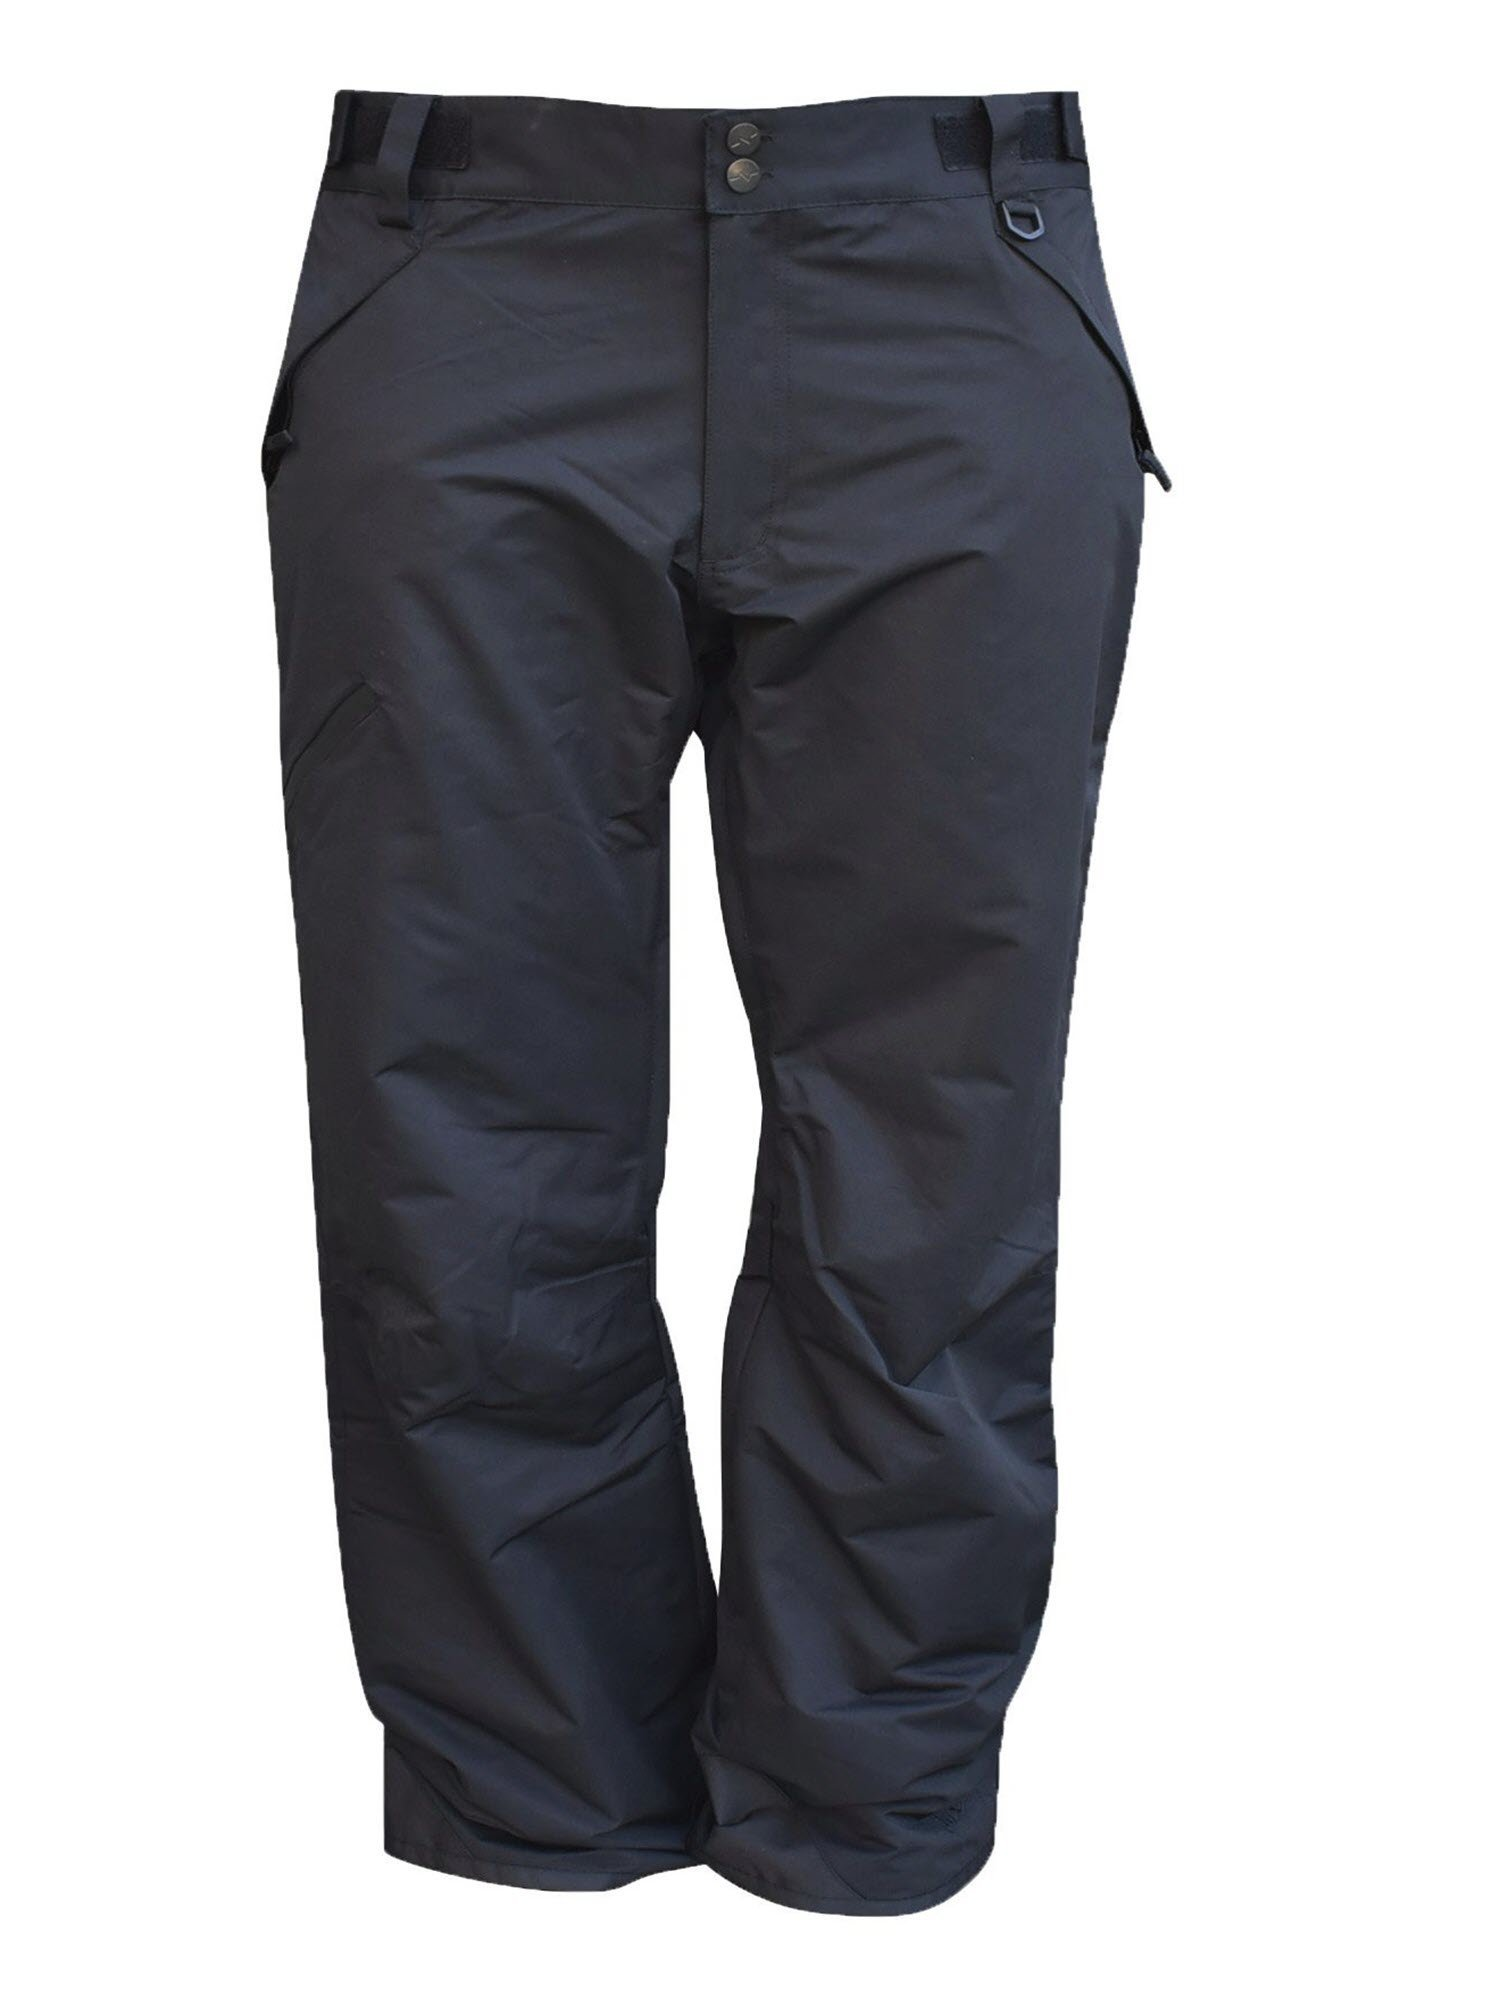 Pulse NWSC Mens Big and Tall Snow Ski Insulated Technical Pants 2XL - 7XL, Big and Tall Sizes